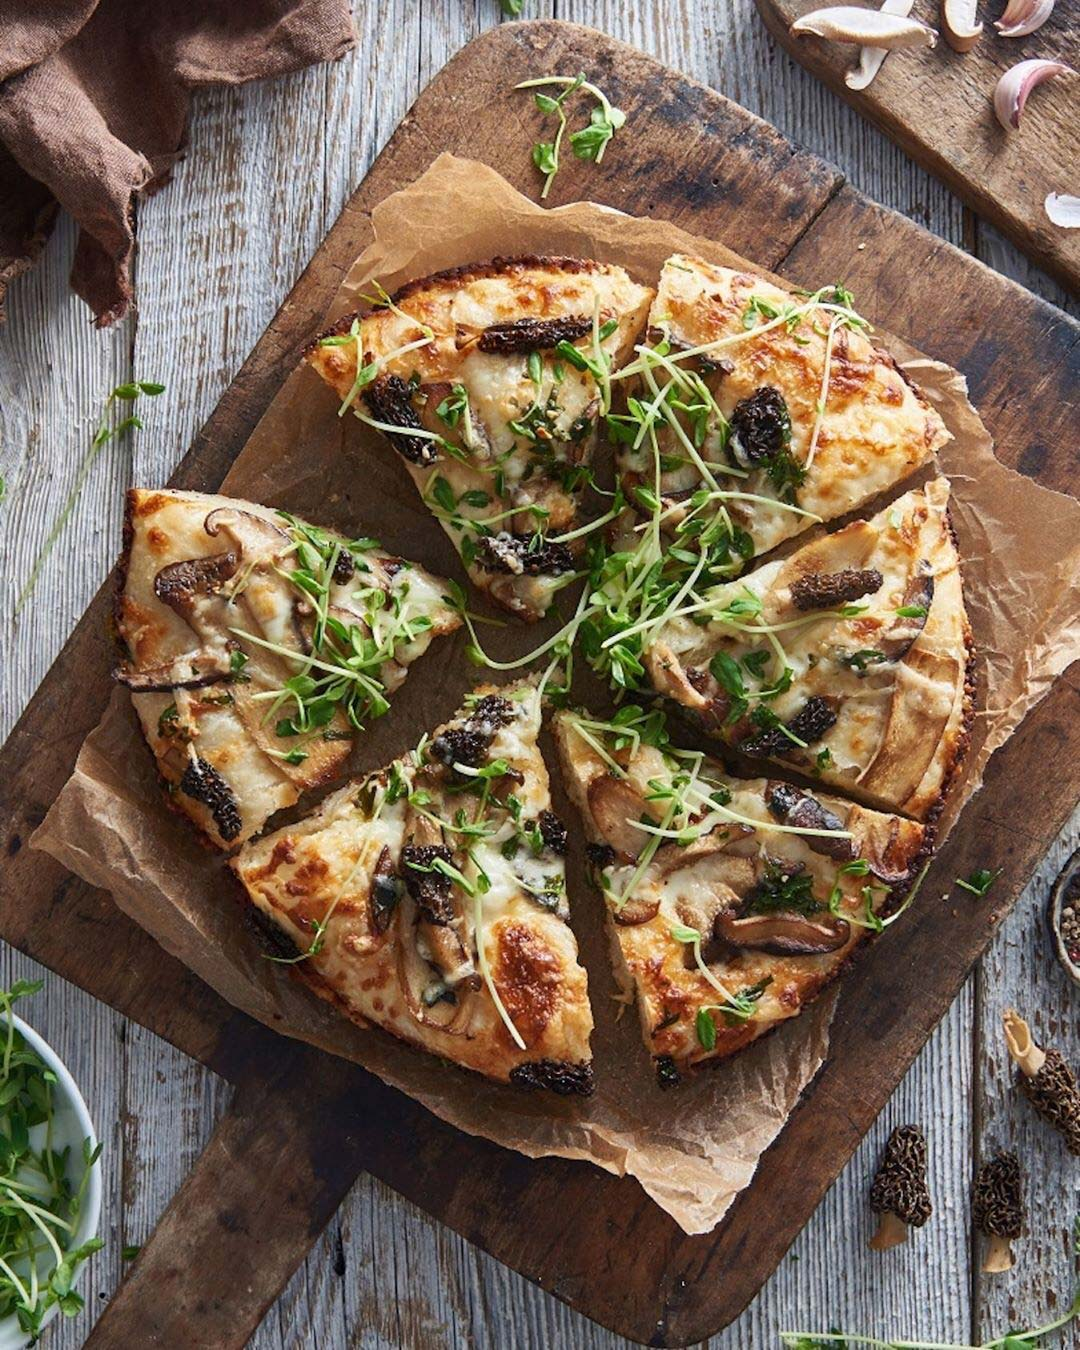 King Arthur Flour Instagram Image of a Pizza